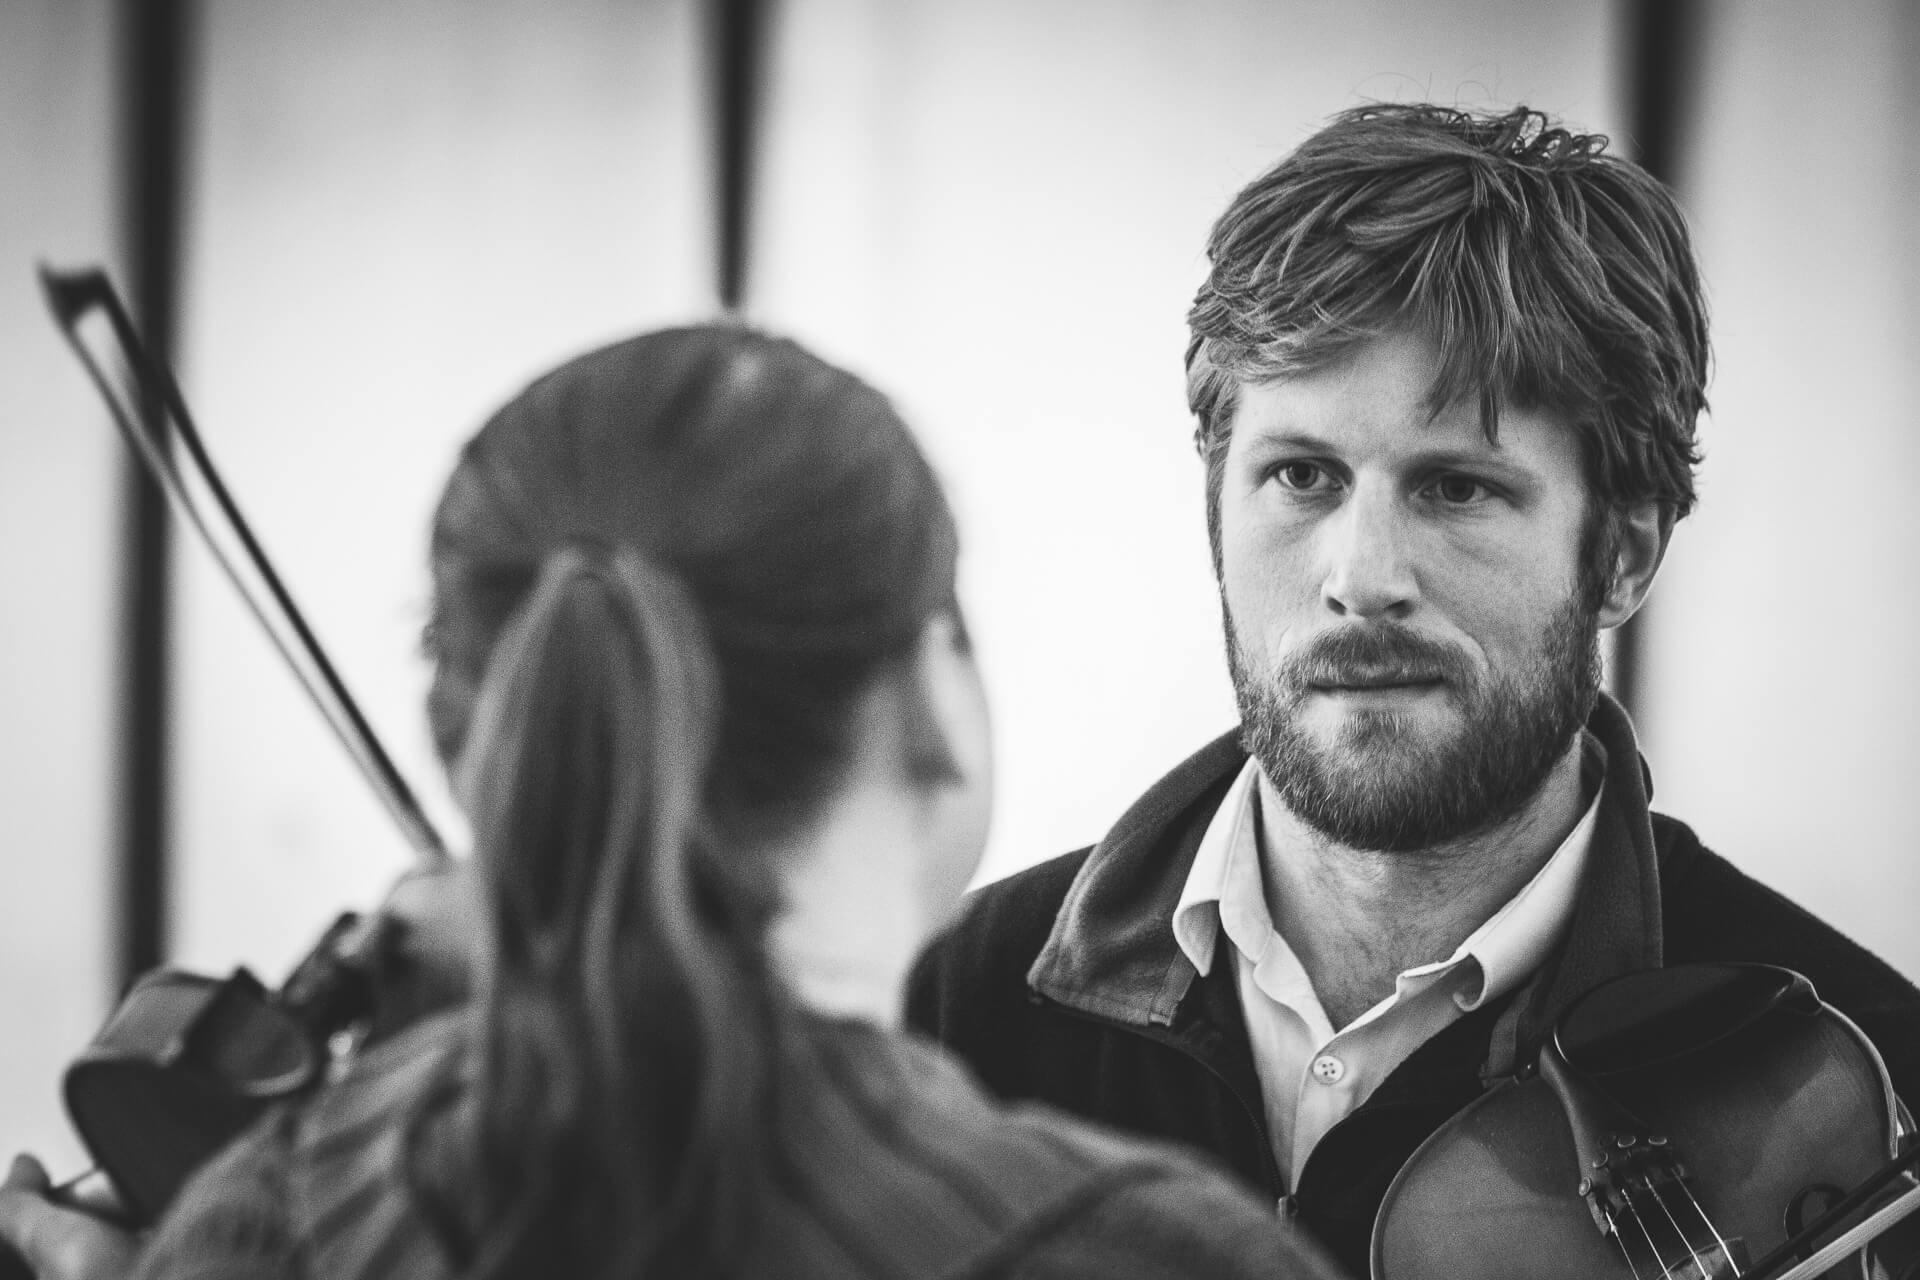 A Black & White head & shoulders image of 2 fiddle players at the Bromyard Folk Festival. The gentleman (who is in focus and facing the camera) stares intently at his female companion (who is out of focus and facing away from the camera). The image suggests a very deep and/or passionate bond between the two.